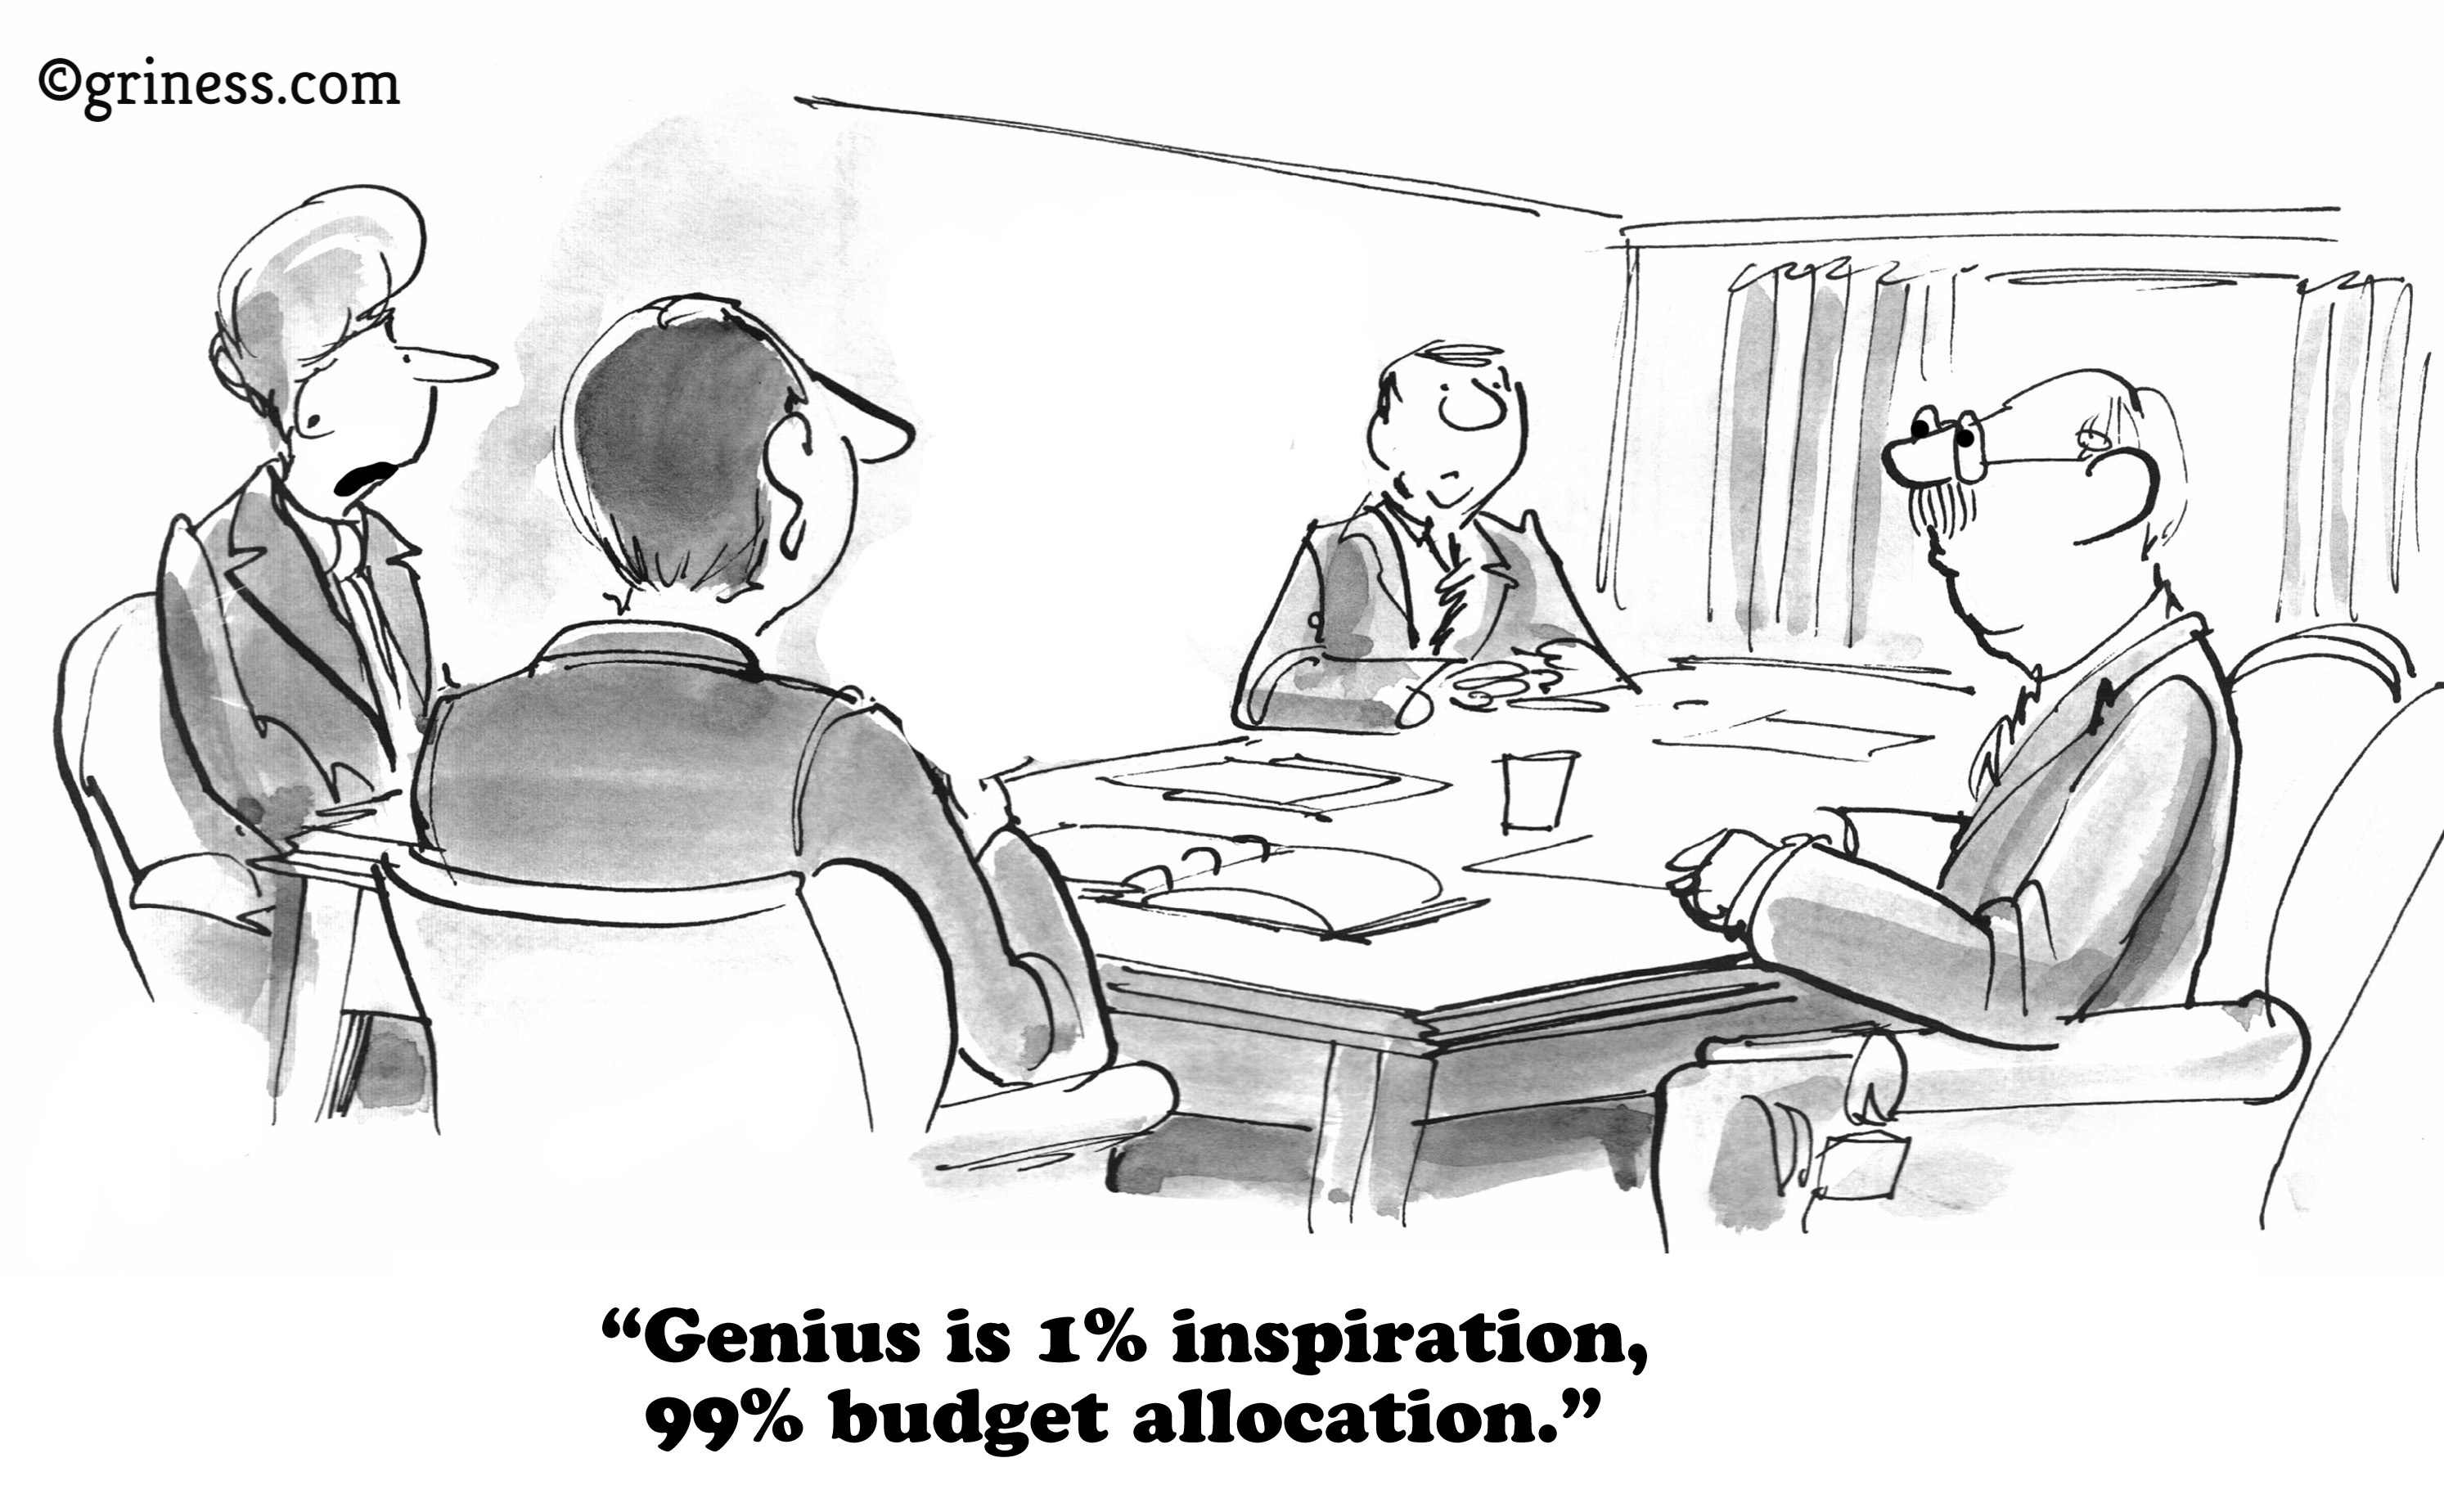 genius is 1 percent inspiration and 99 percent budget allocation_business cartoons free_corporate humor